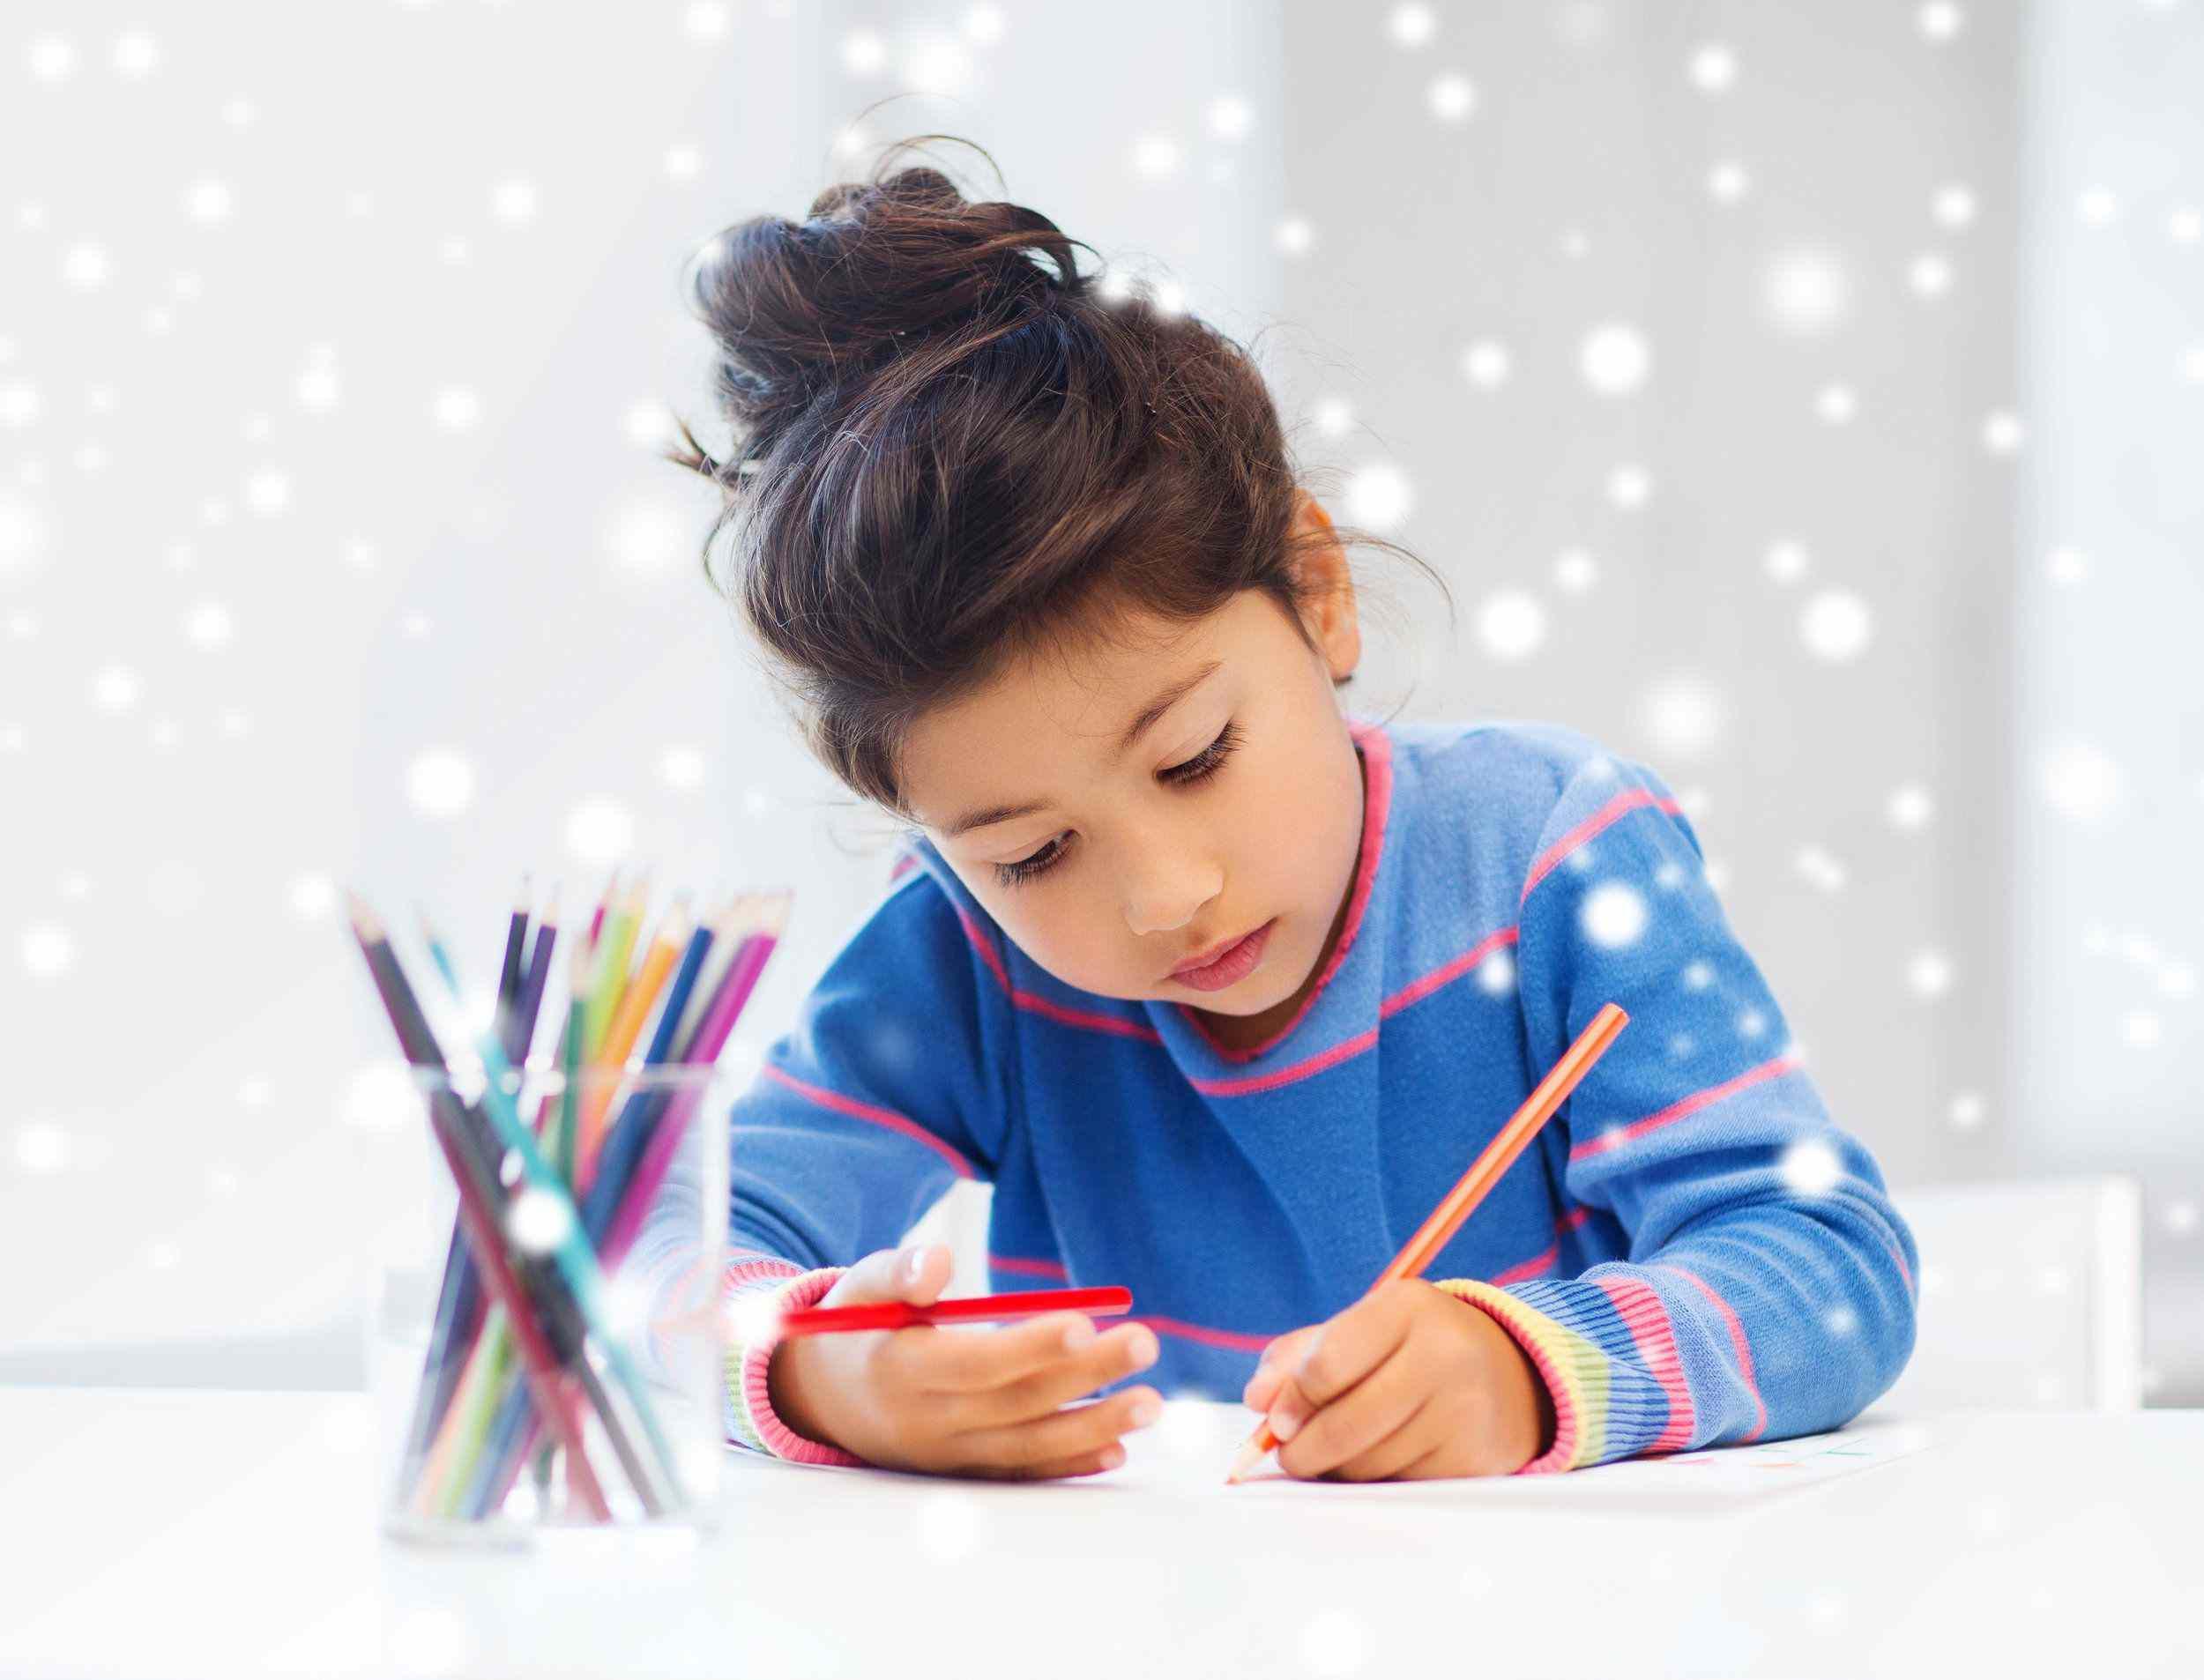 Girl doing homework with colored pencils